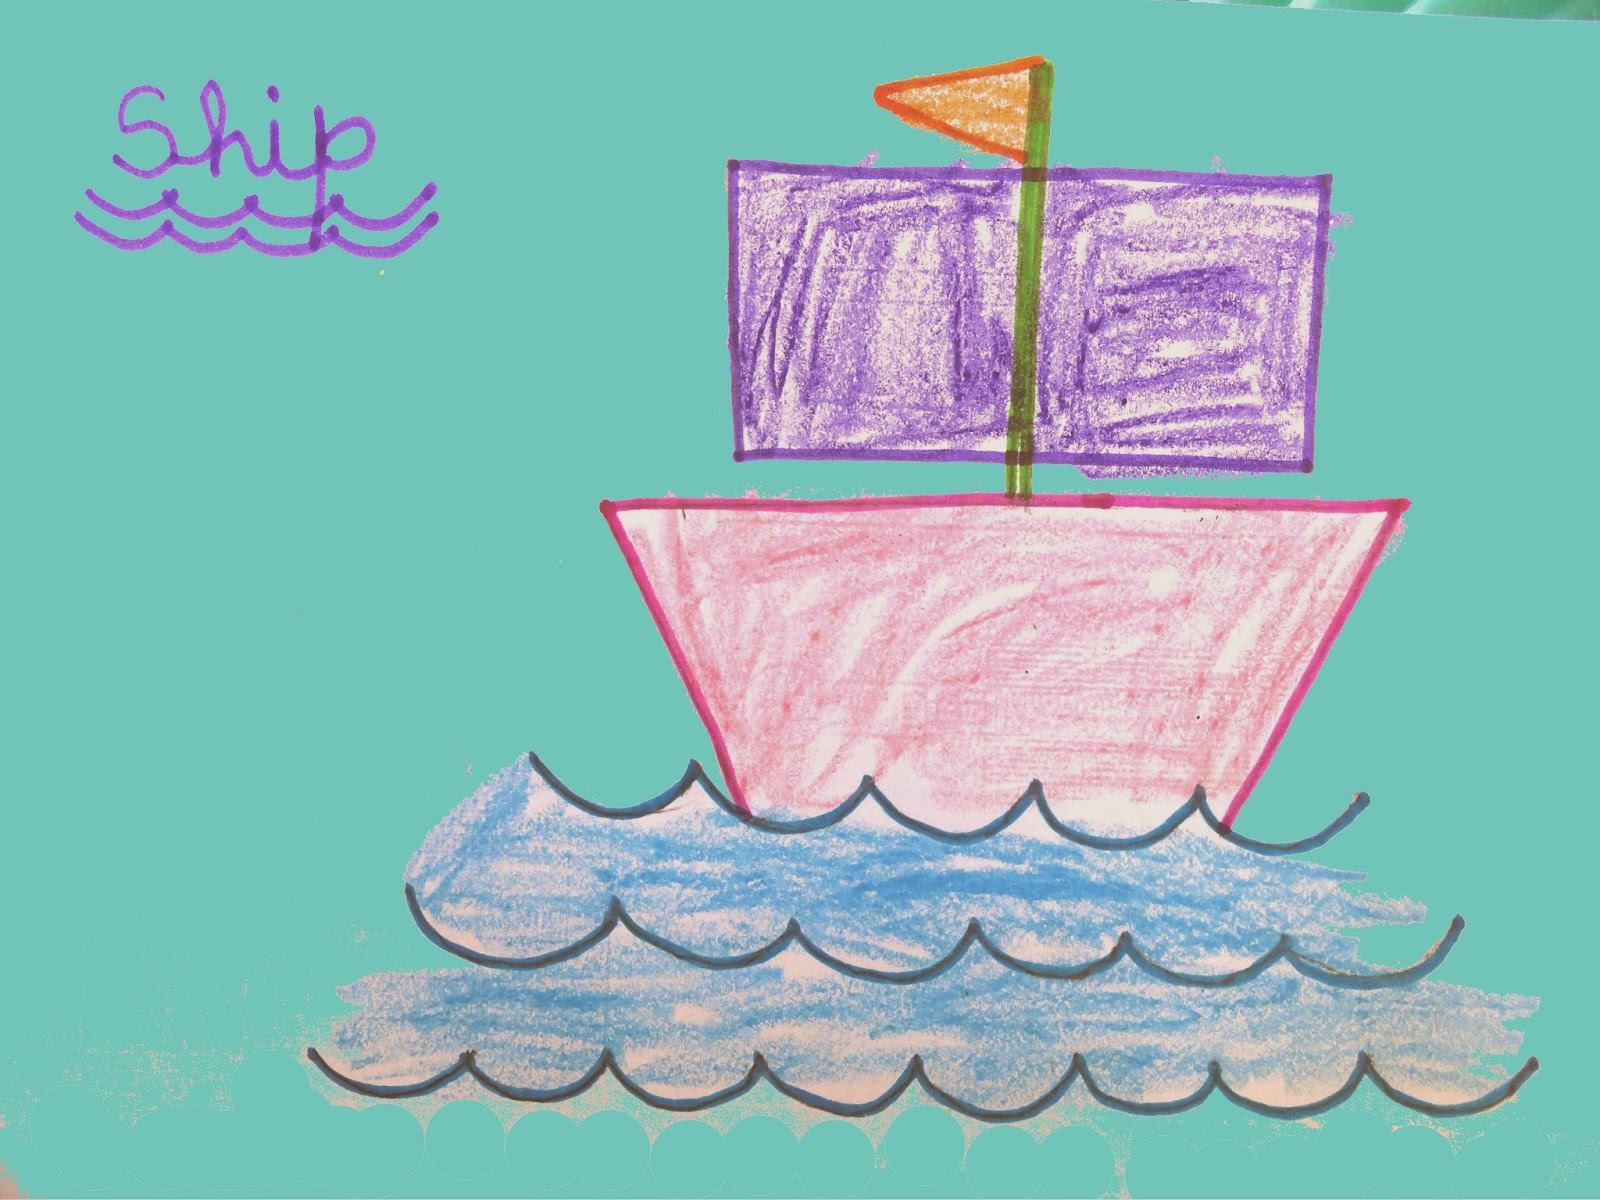 1600x1200 Quick Facts About Ship Virtual Kidspace